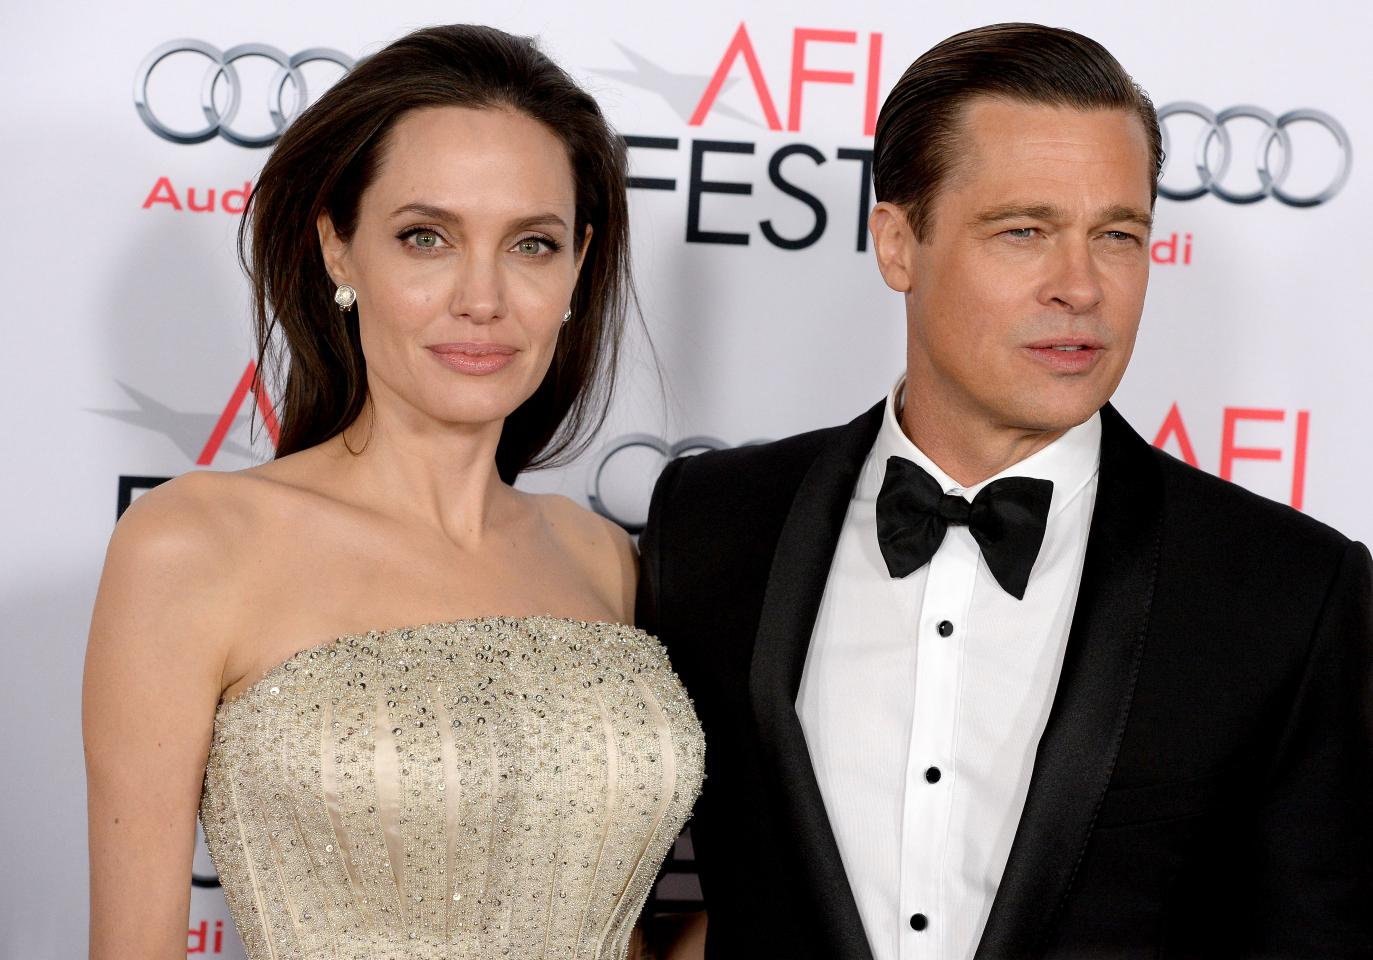 pitts divorced singles This post has been updated with new information fans were thrown for a loop when news broke in september 2016 that angelina jolie filed for divorce from.